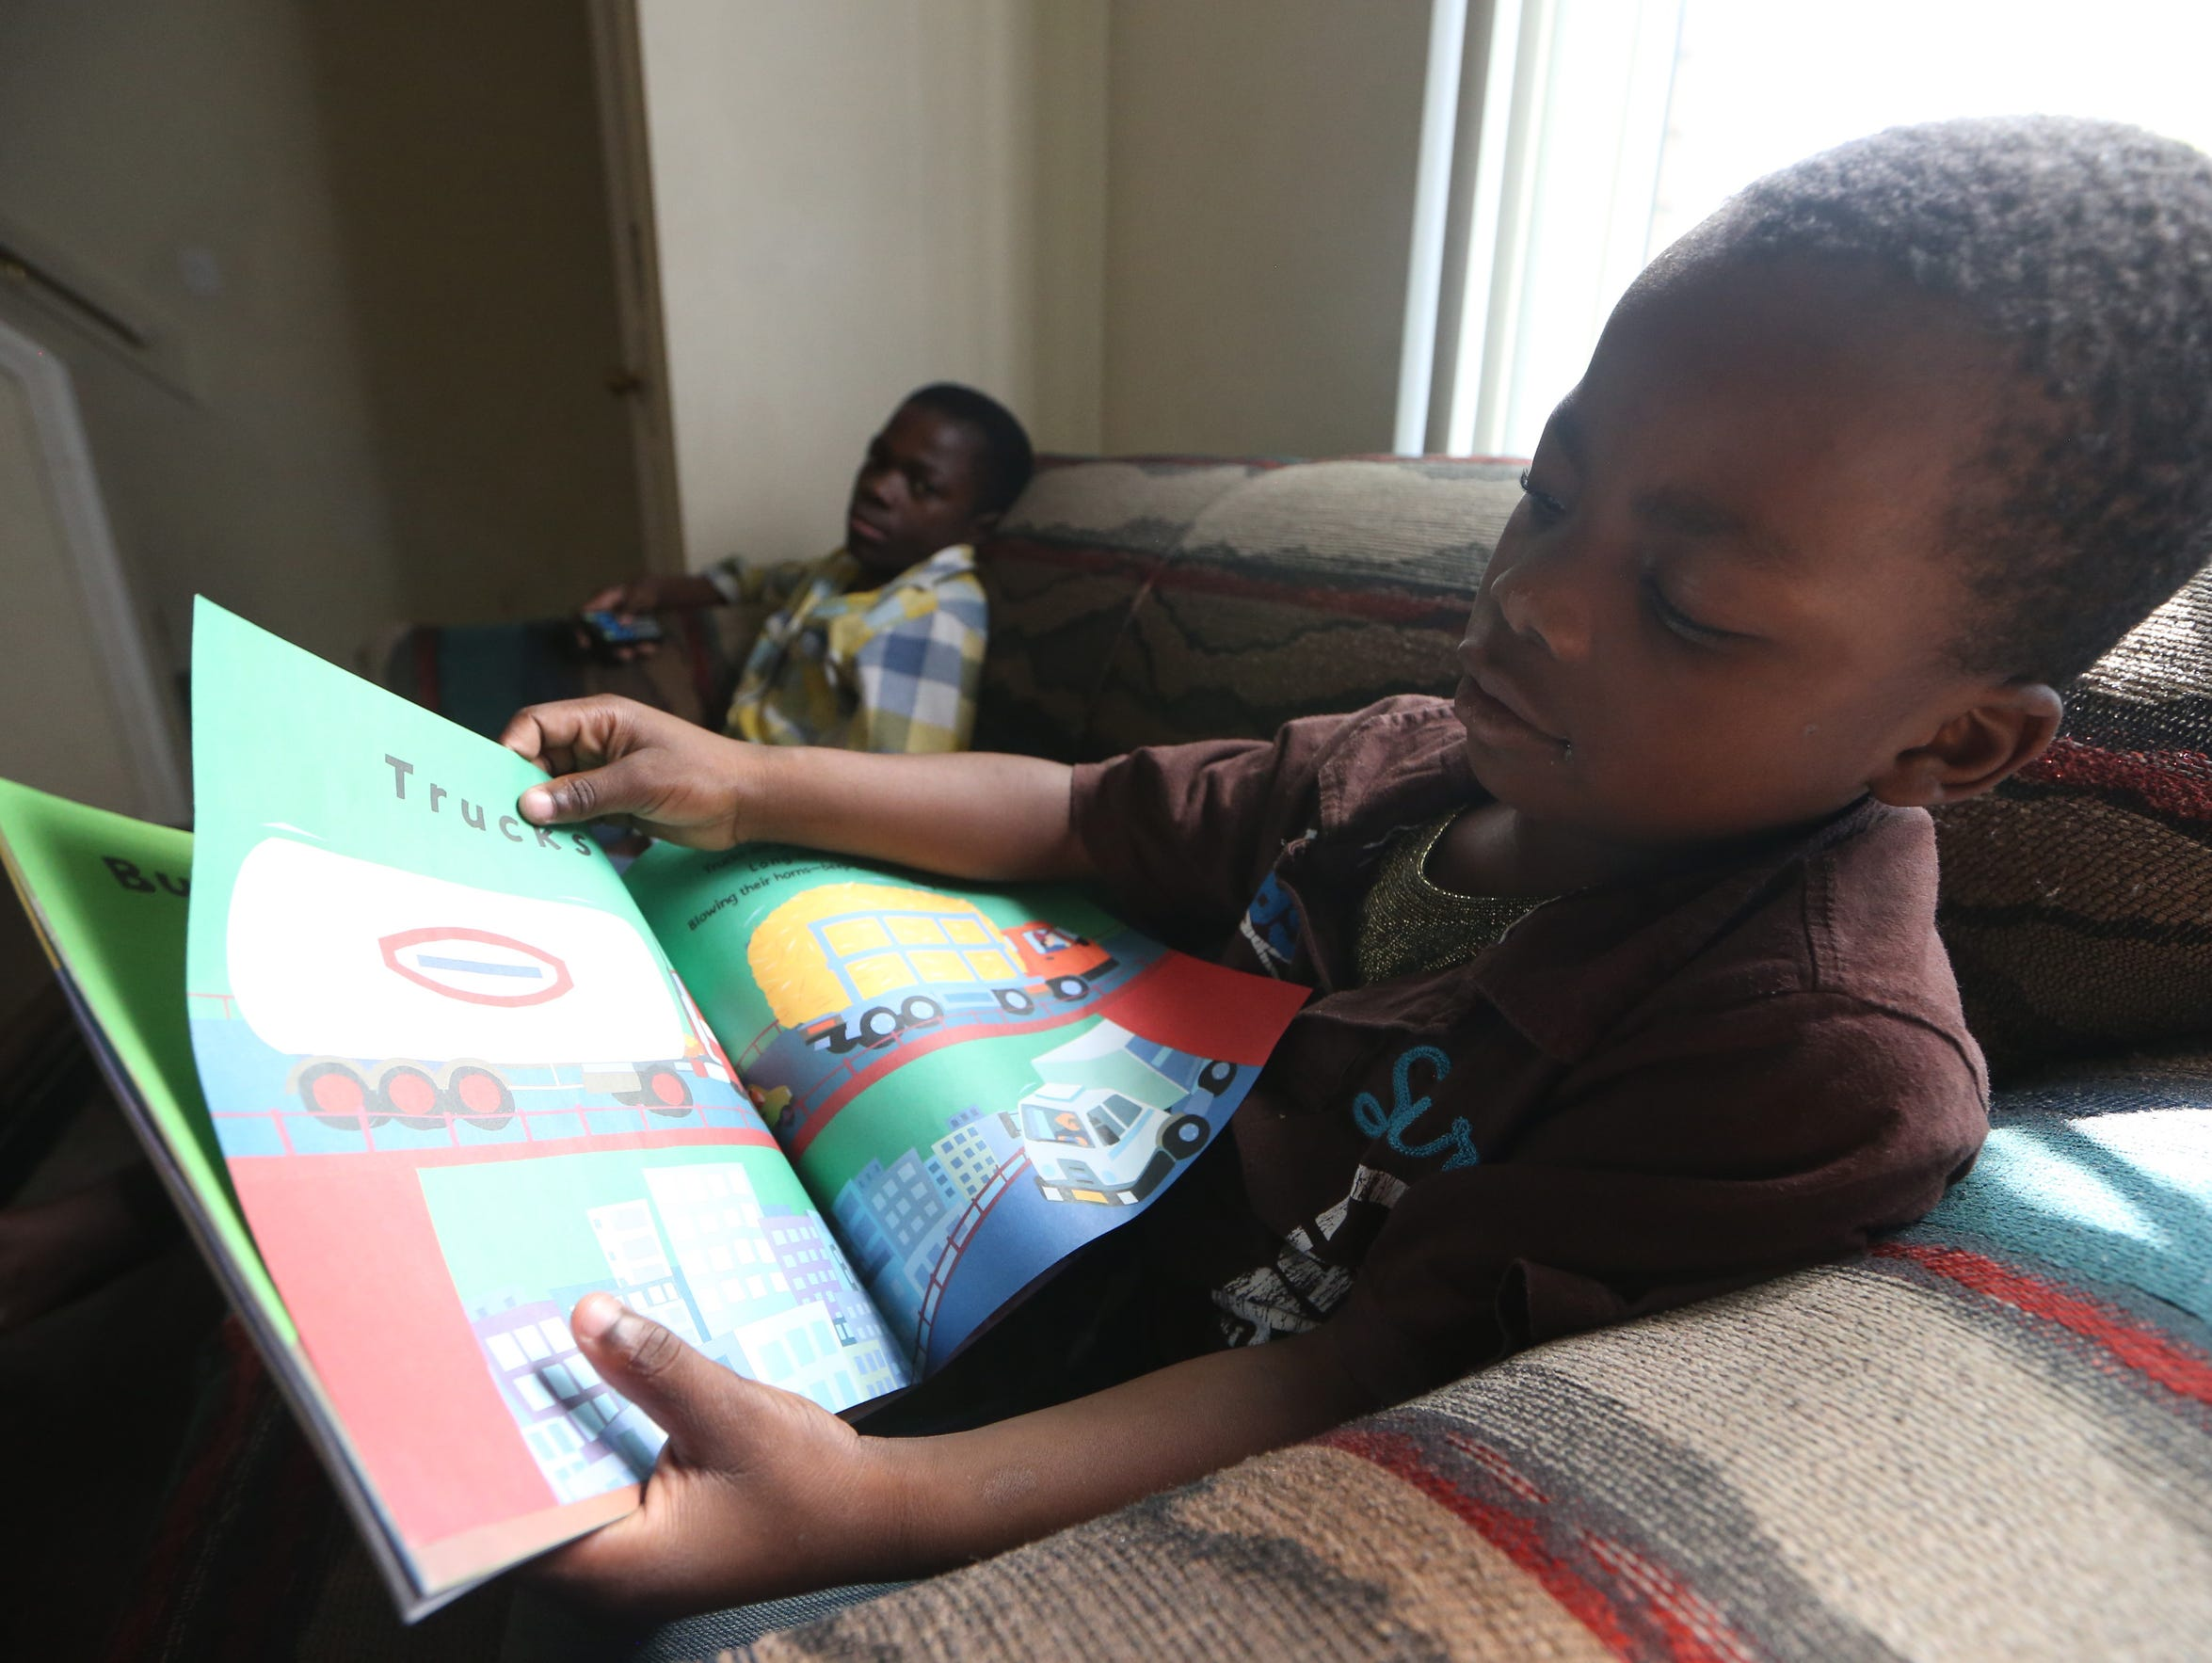 Abdineko, 7, looks over his book at their home a month